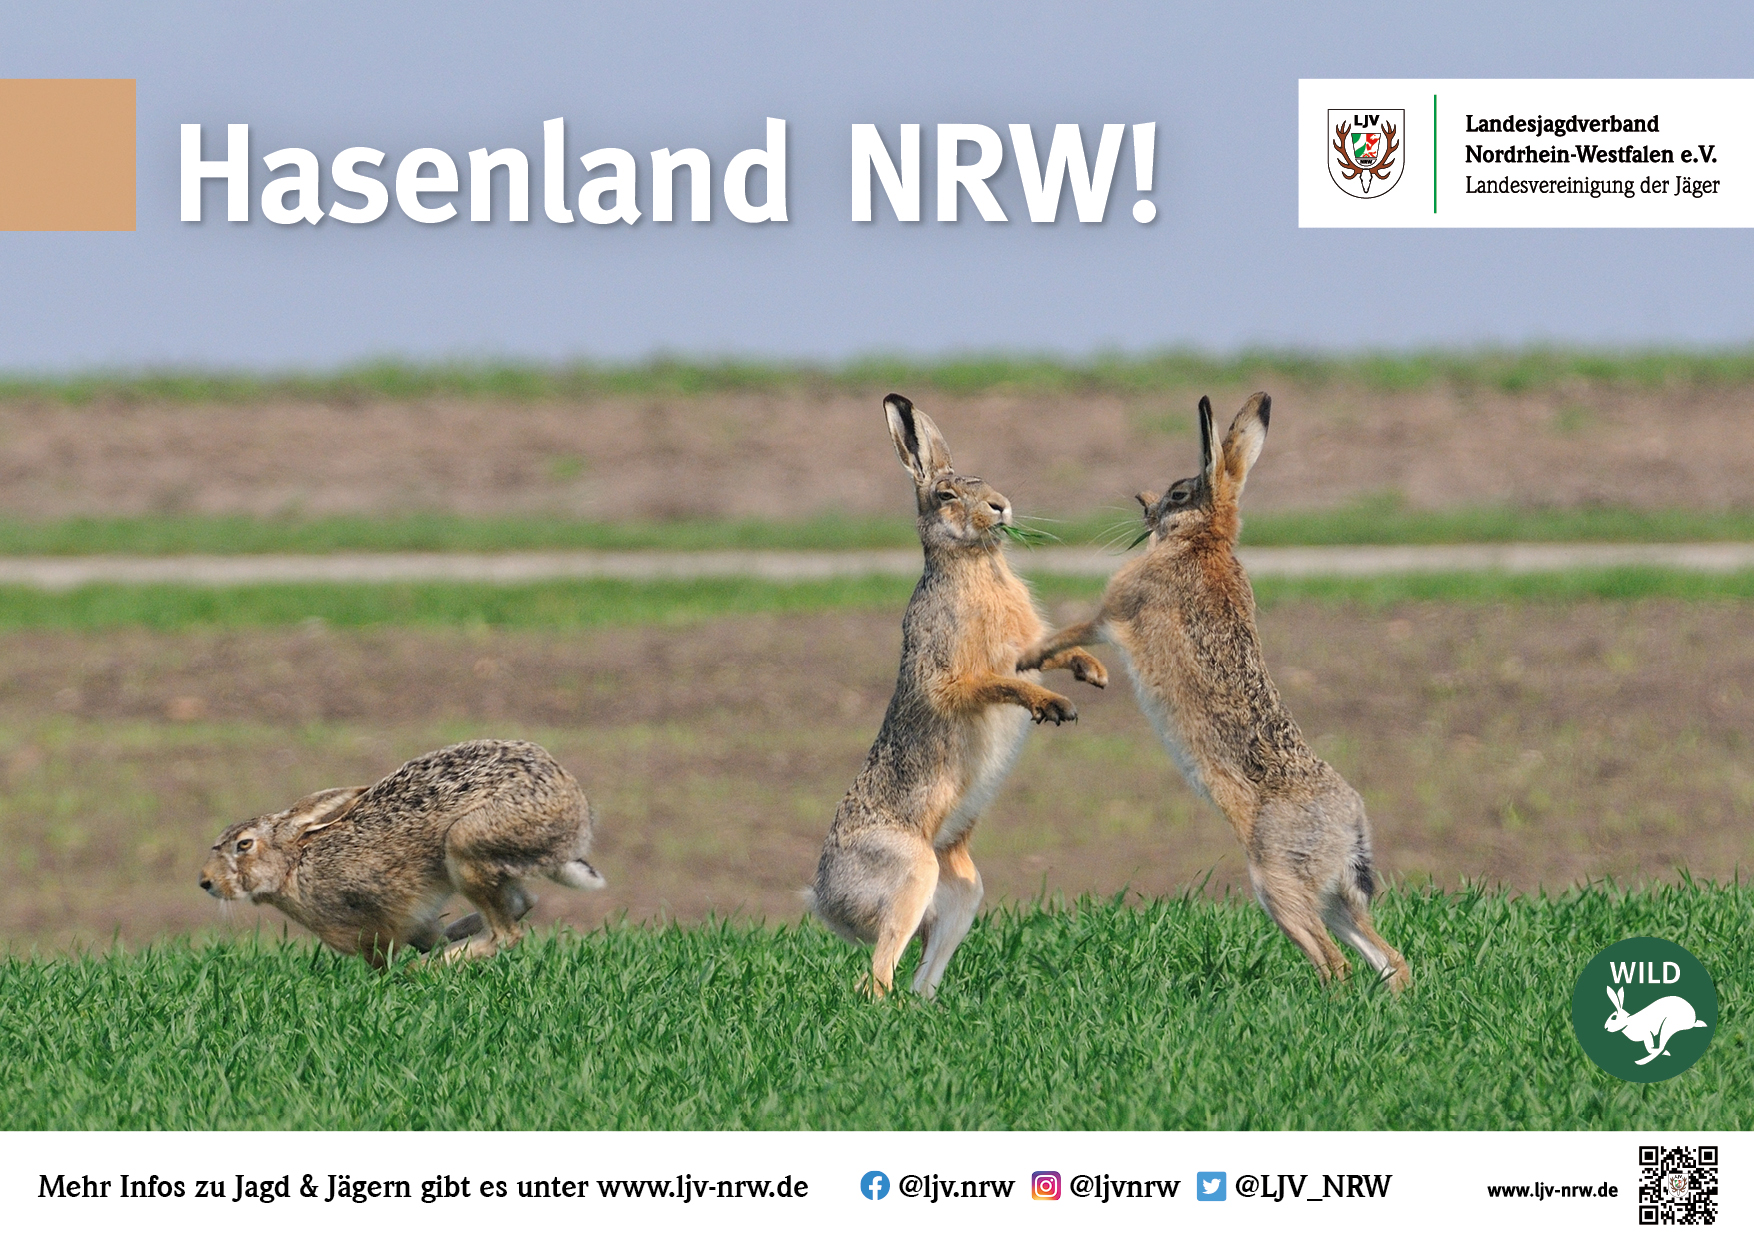 A4 Poster 03/21 - Hasenland NRW